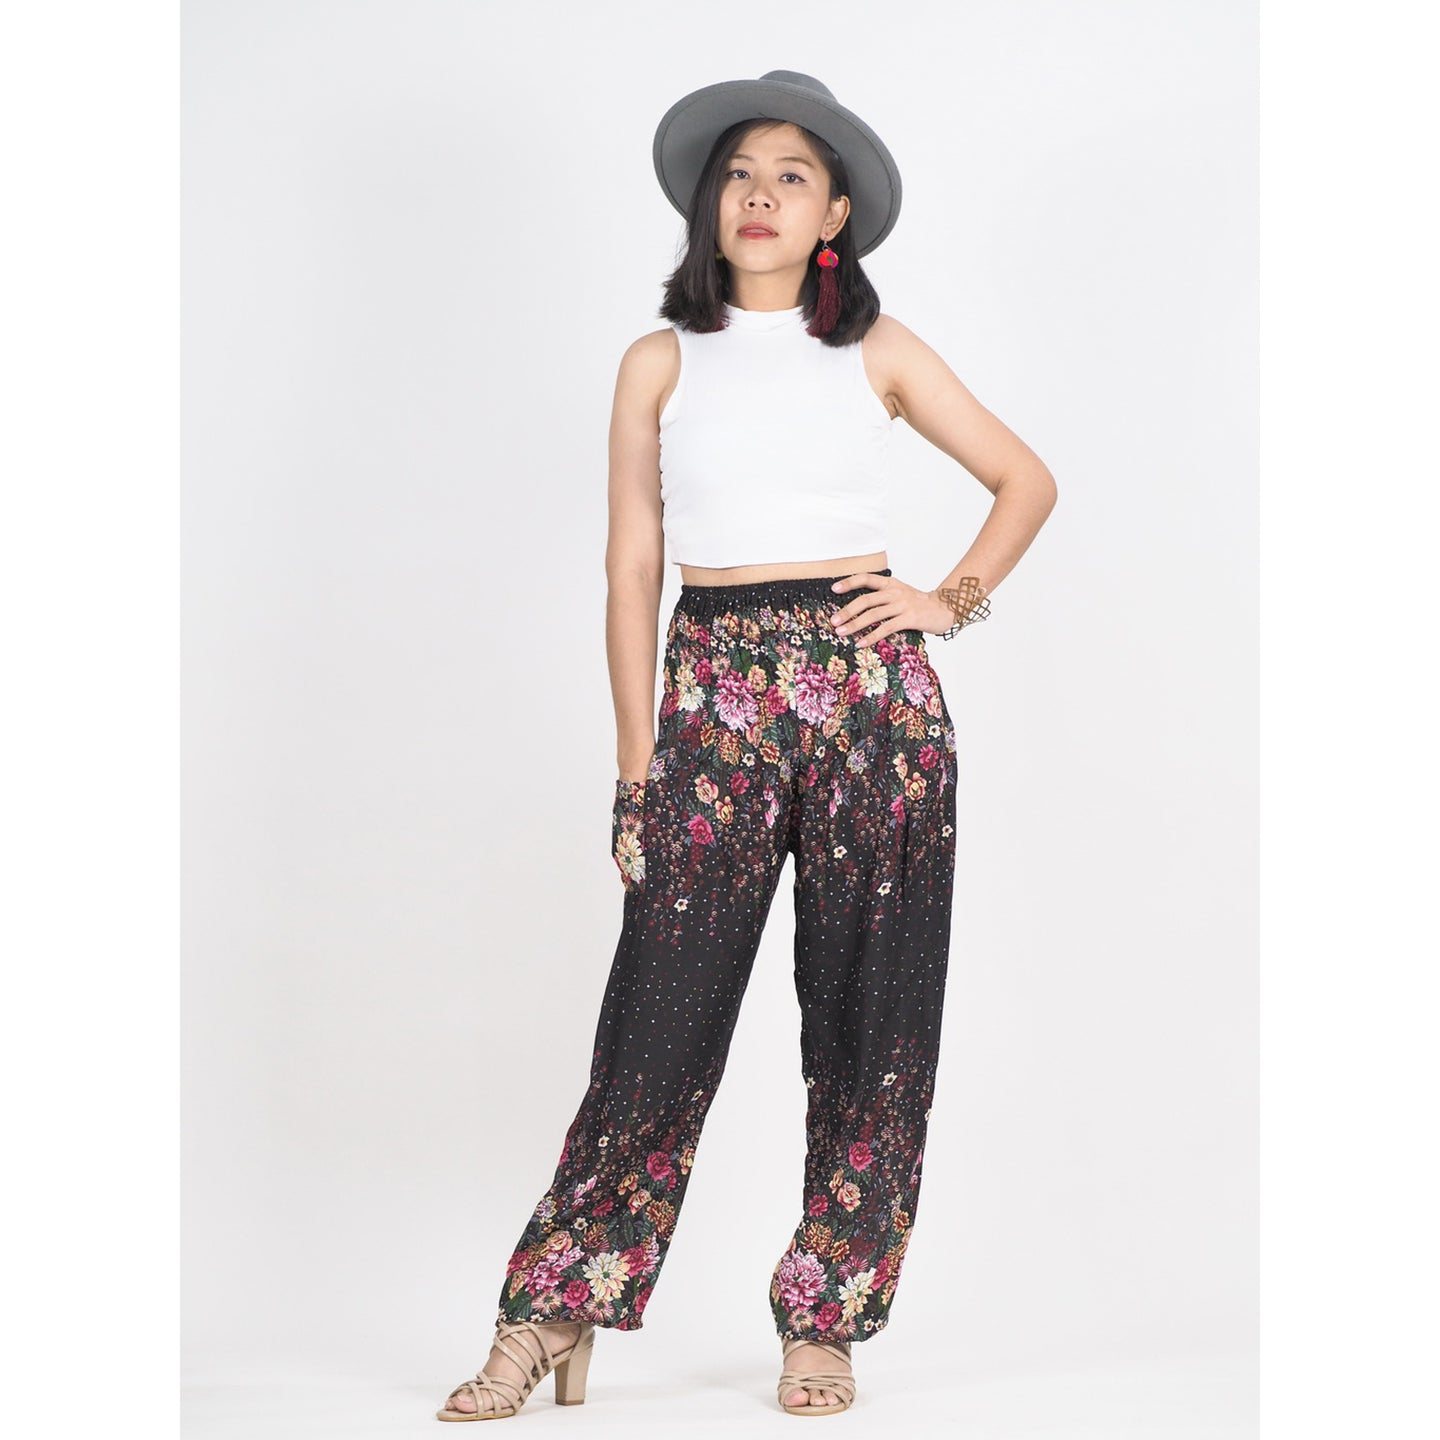 Flowers 100 women harem pants in Black PP0004 020100 04